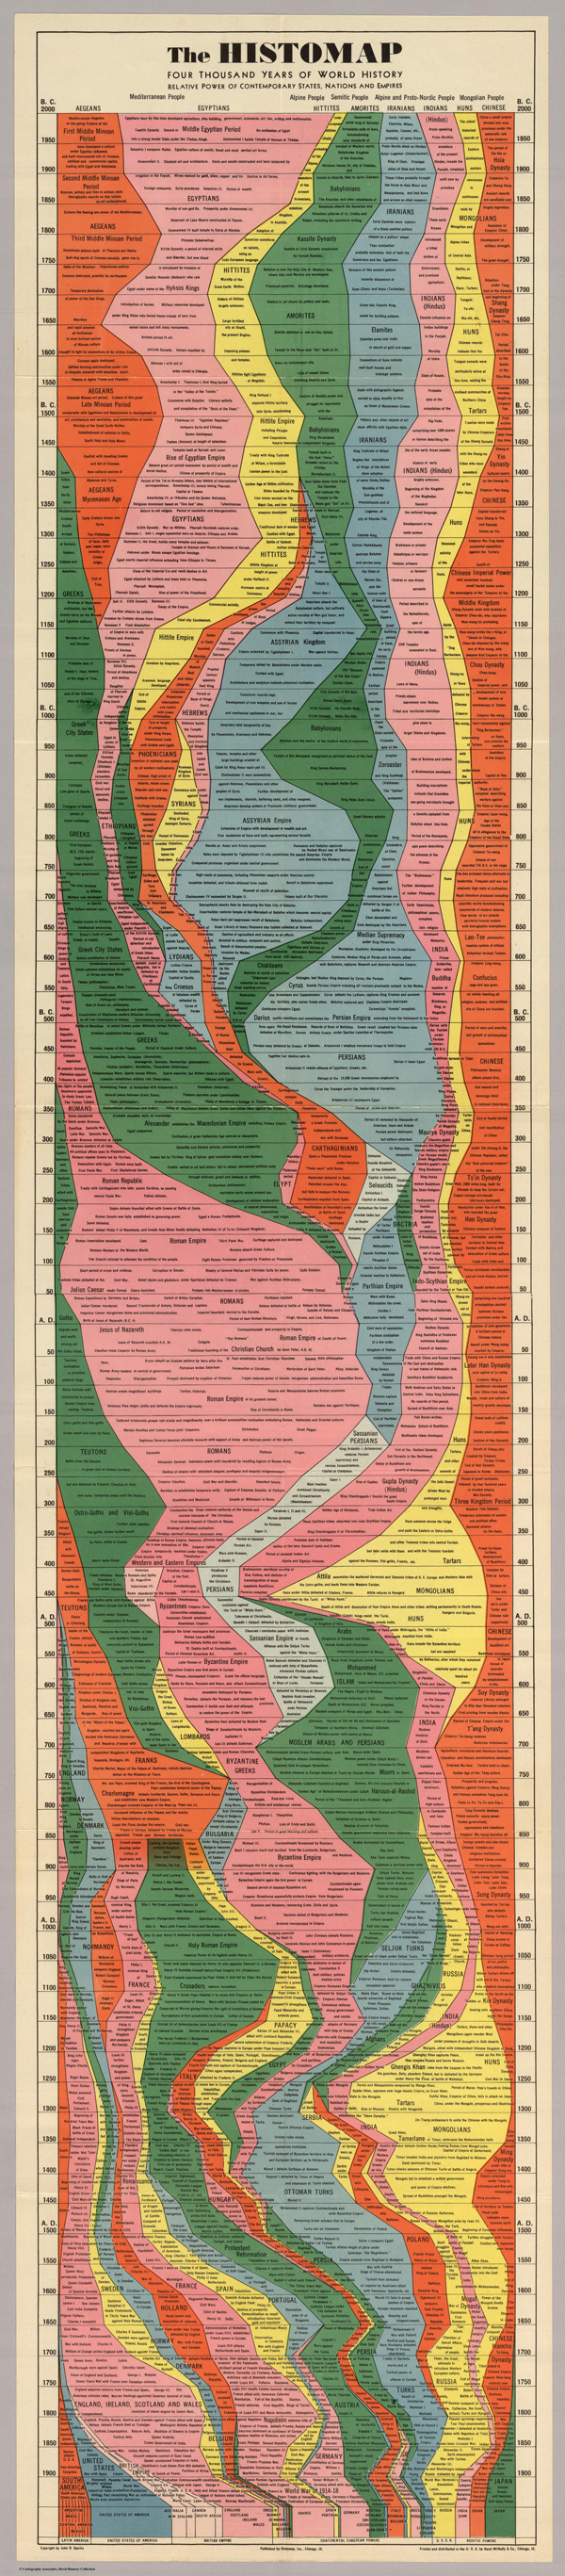 4000 Years Of World History In One Amazing Histomap [infographic]